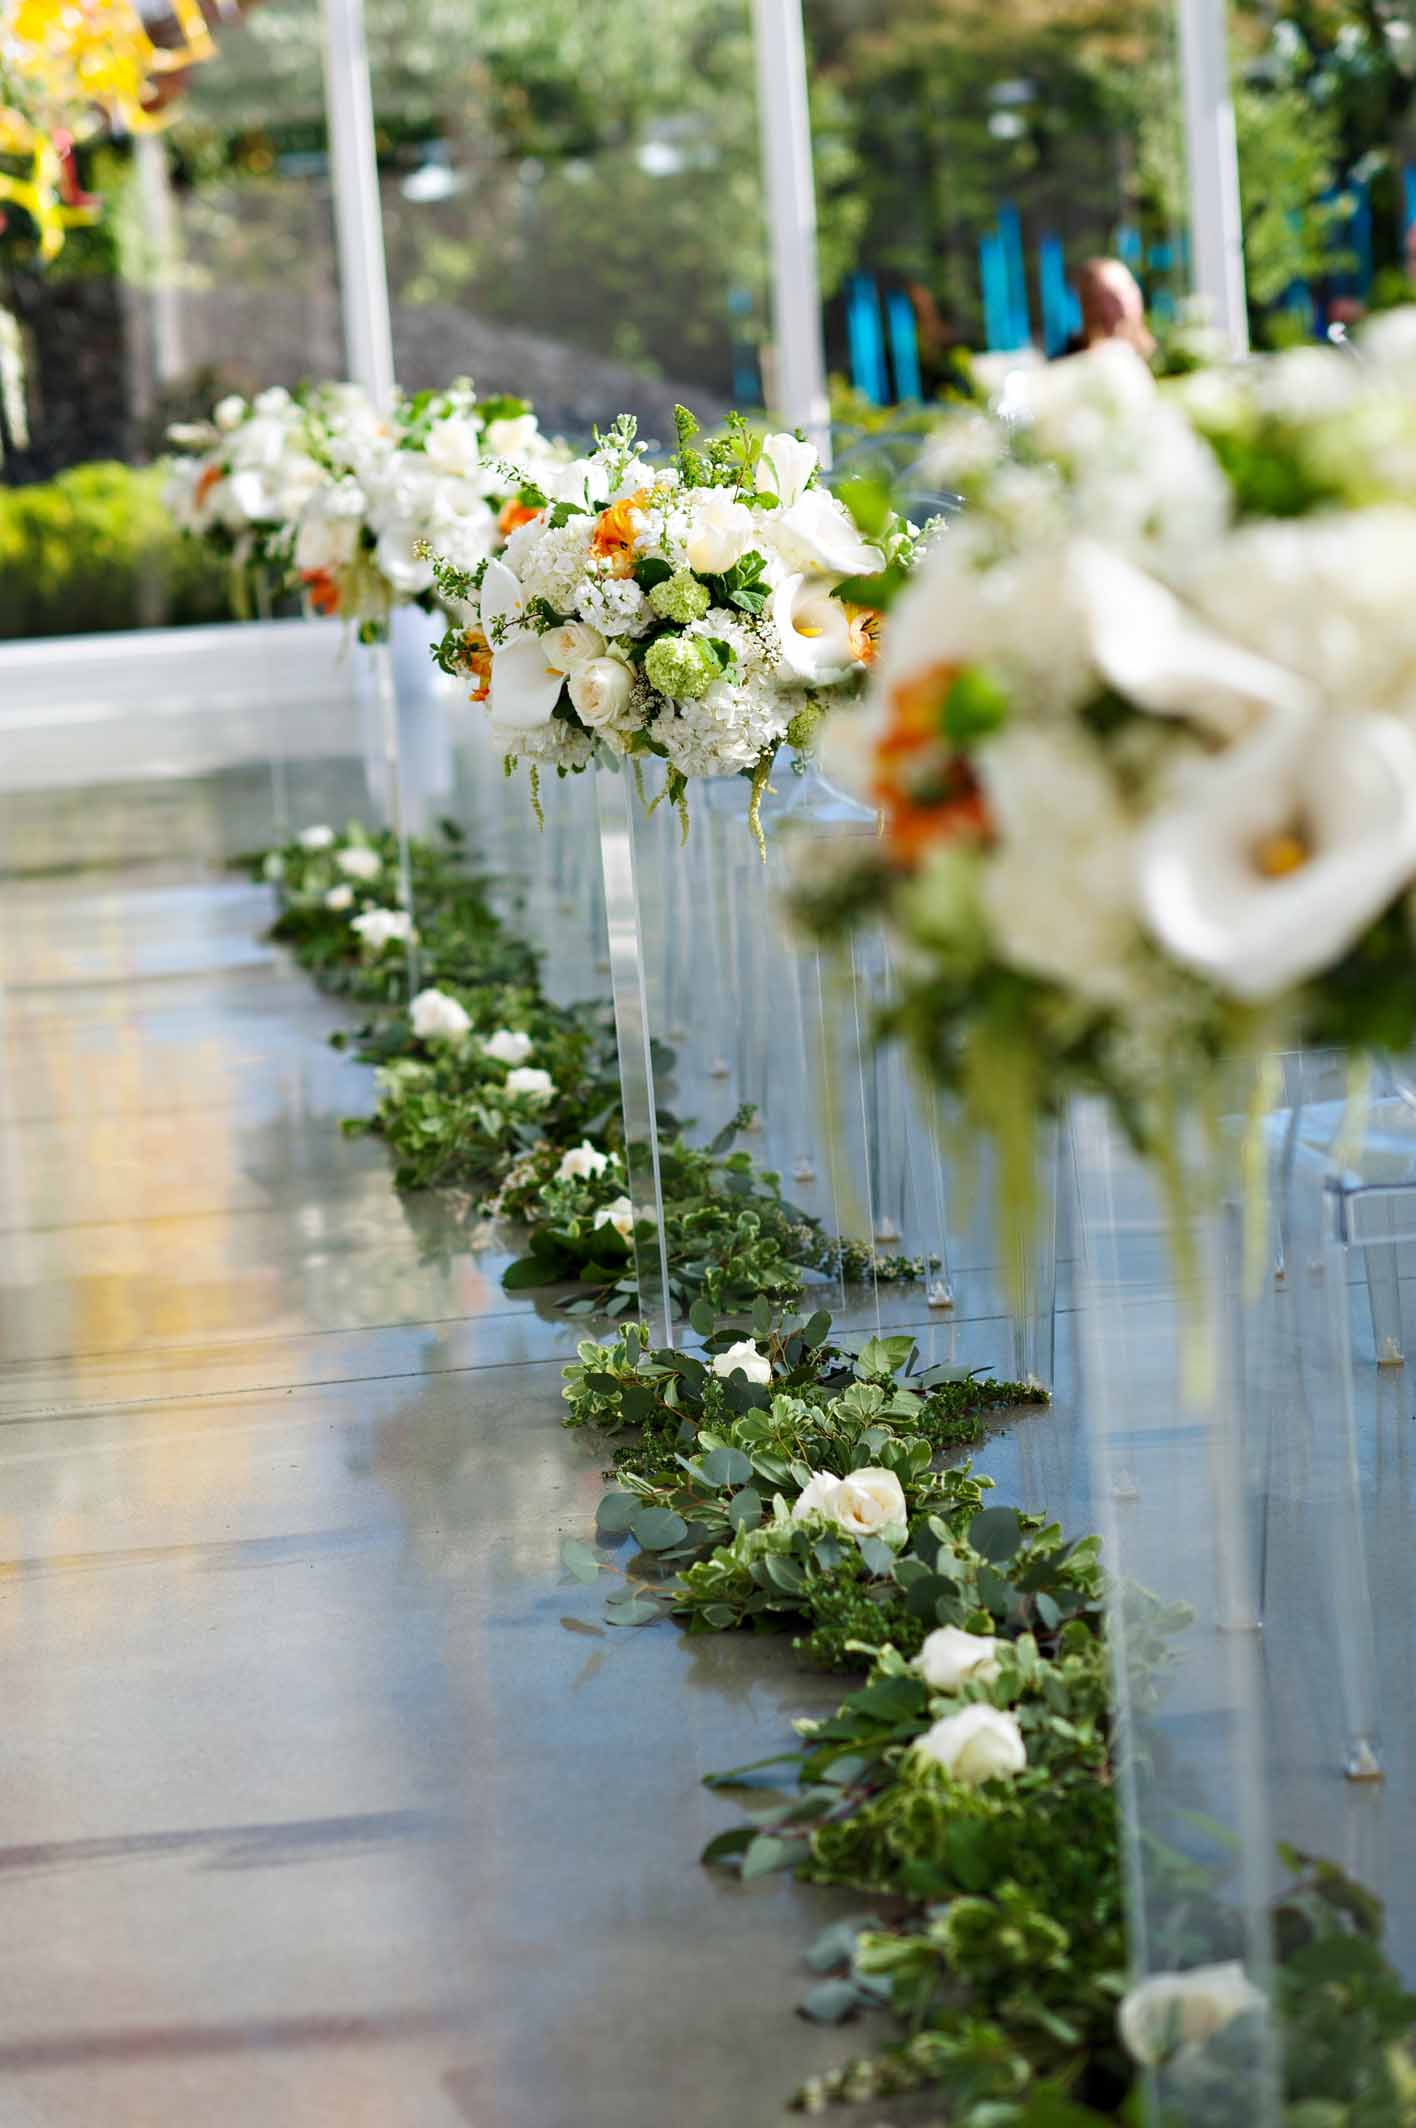 Wedding ceremony aisle lined with large white flower arrangements propped onto clear lucite pedestals, with greenery garland on the floor - Chihuly Wedding Seattle - Flora Nova Design Seattle